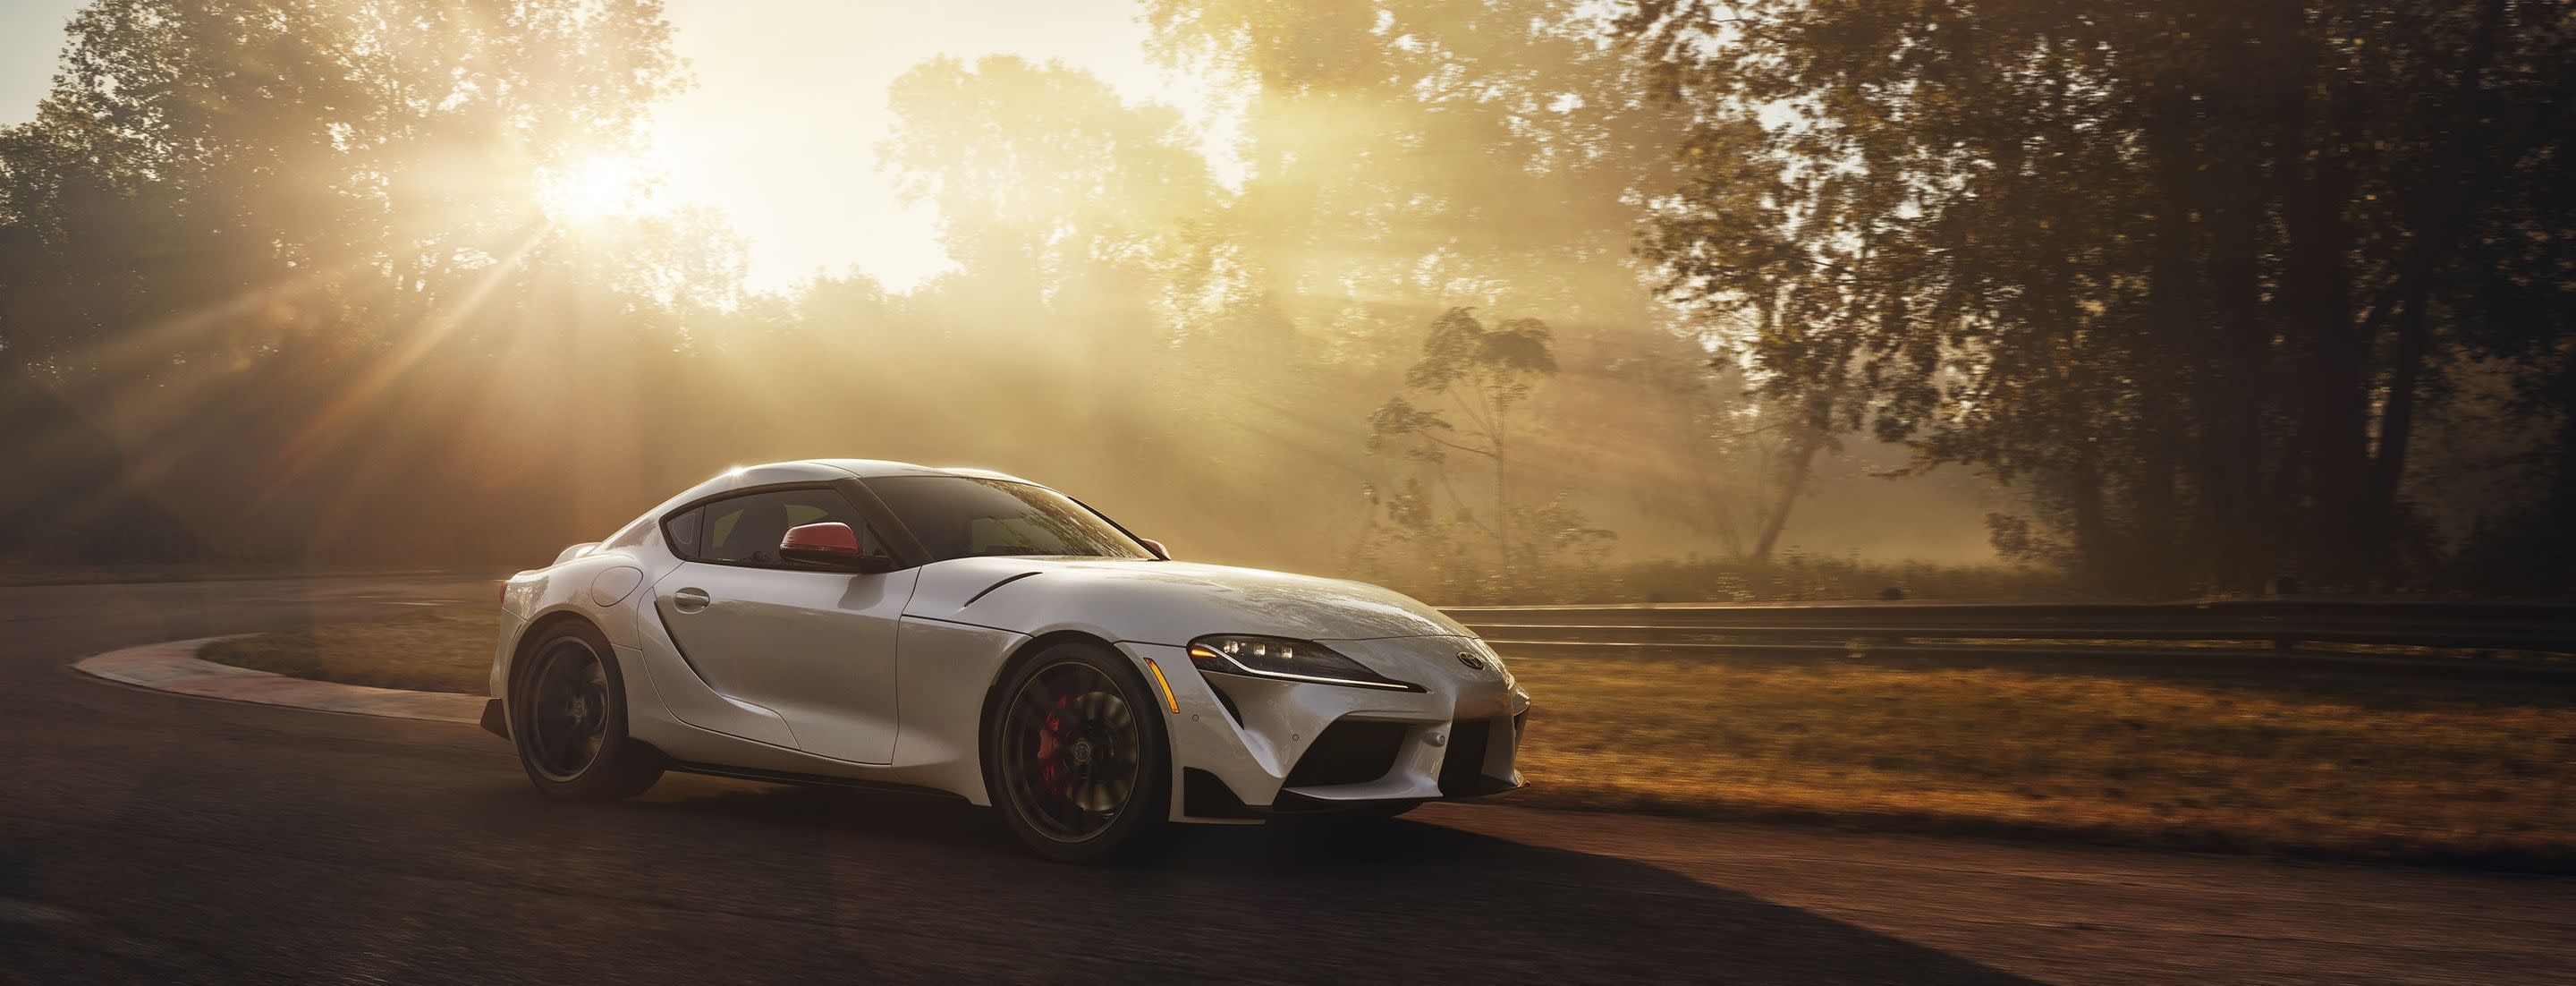 2020 Toyota Supra for Sale near Lee's Summit, MO, 64086